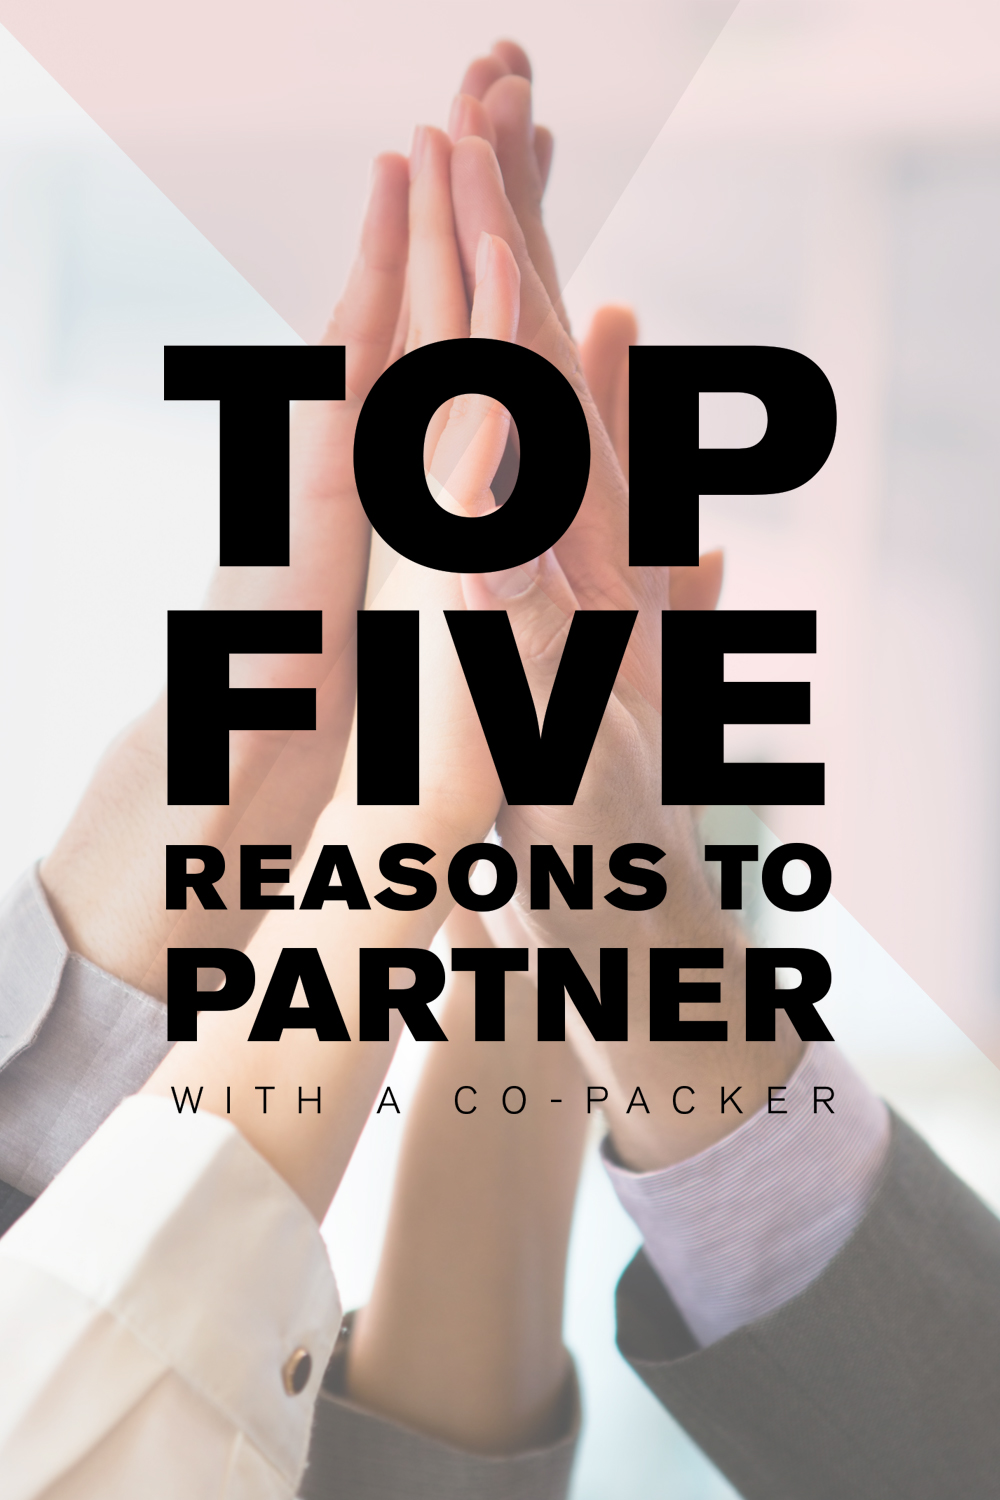 Top Five Reasons To Partner With A Co-Packer